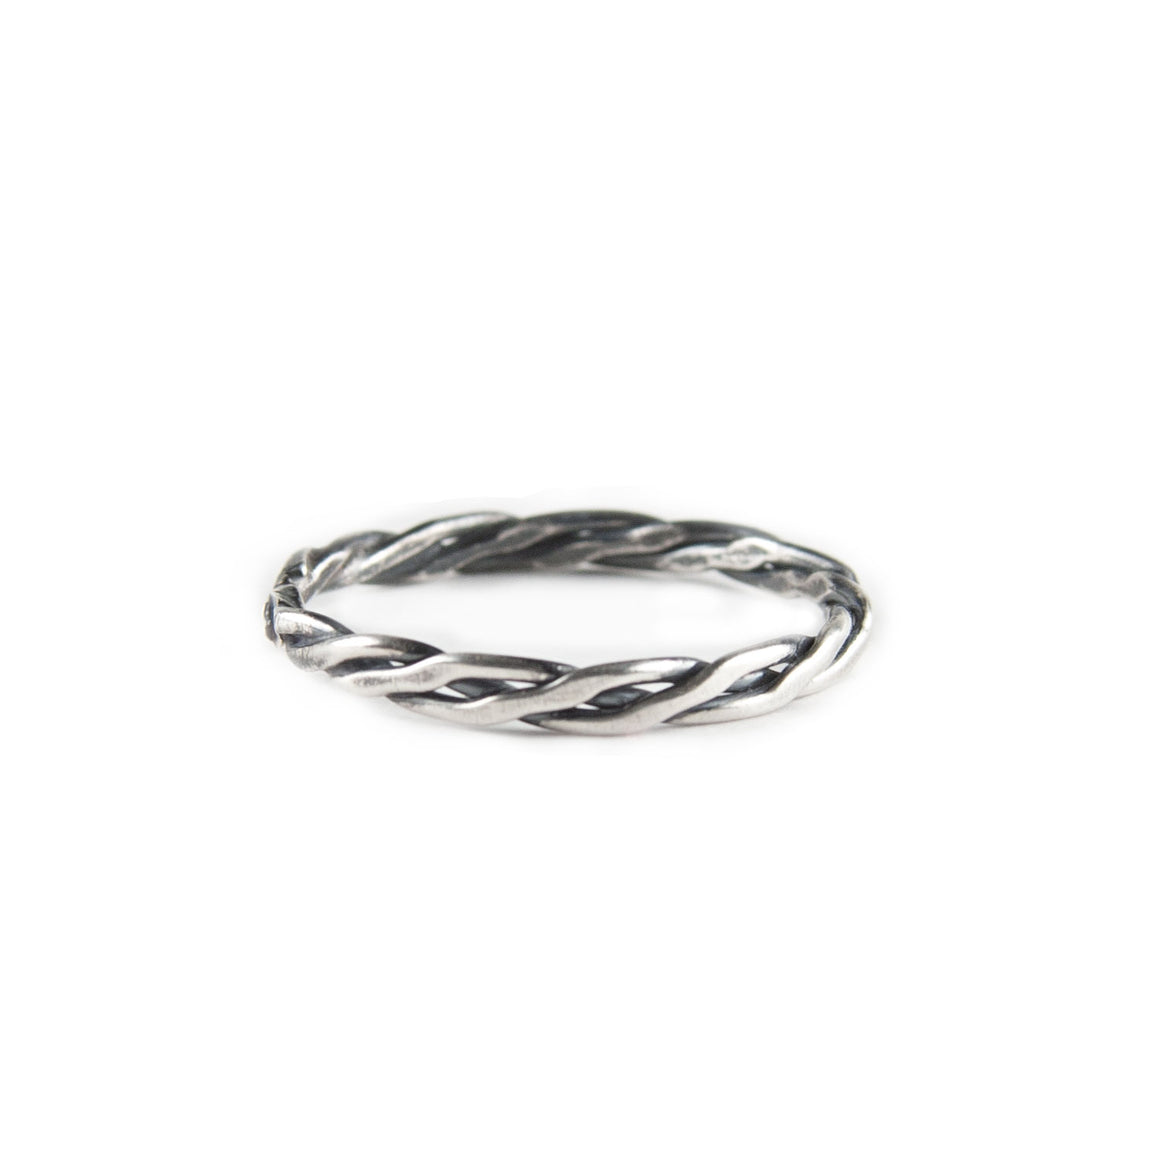 Christelle Oxidized Stacking Ring available at Micky Chase Jewelry